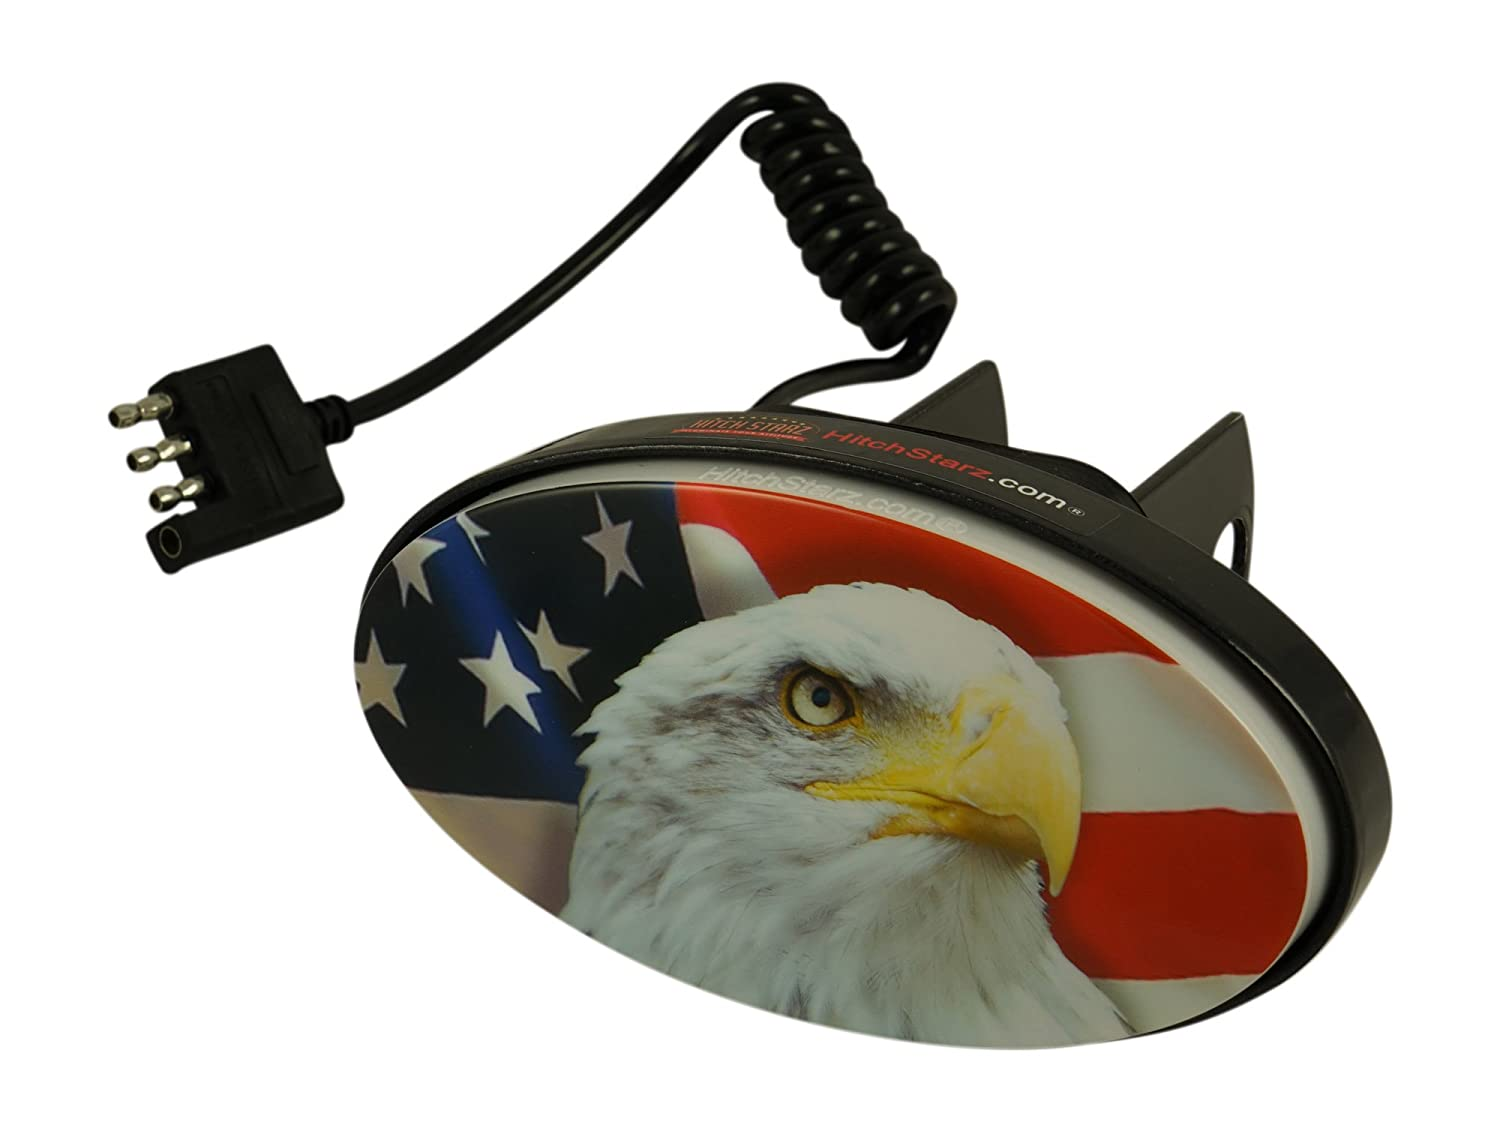 Hitch Starz - Illuminate Your Attitude. The original changeable hitch cover. (US Flag/Eagle) Universal fit 1.25' & 2' trailer hitch receivers. Hitch Starz® HS88501-UE